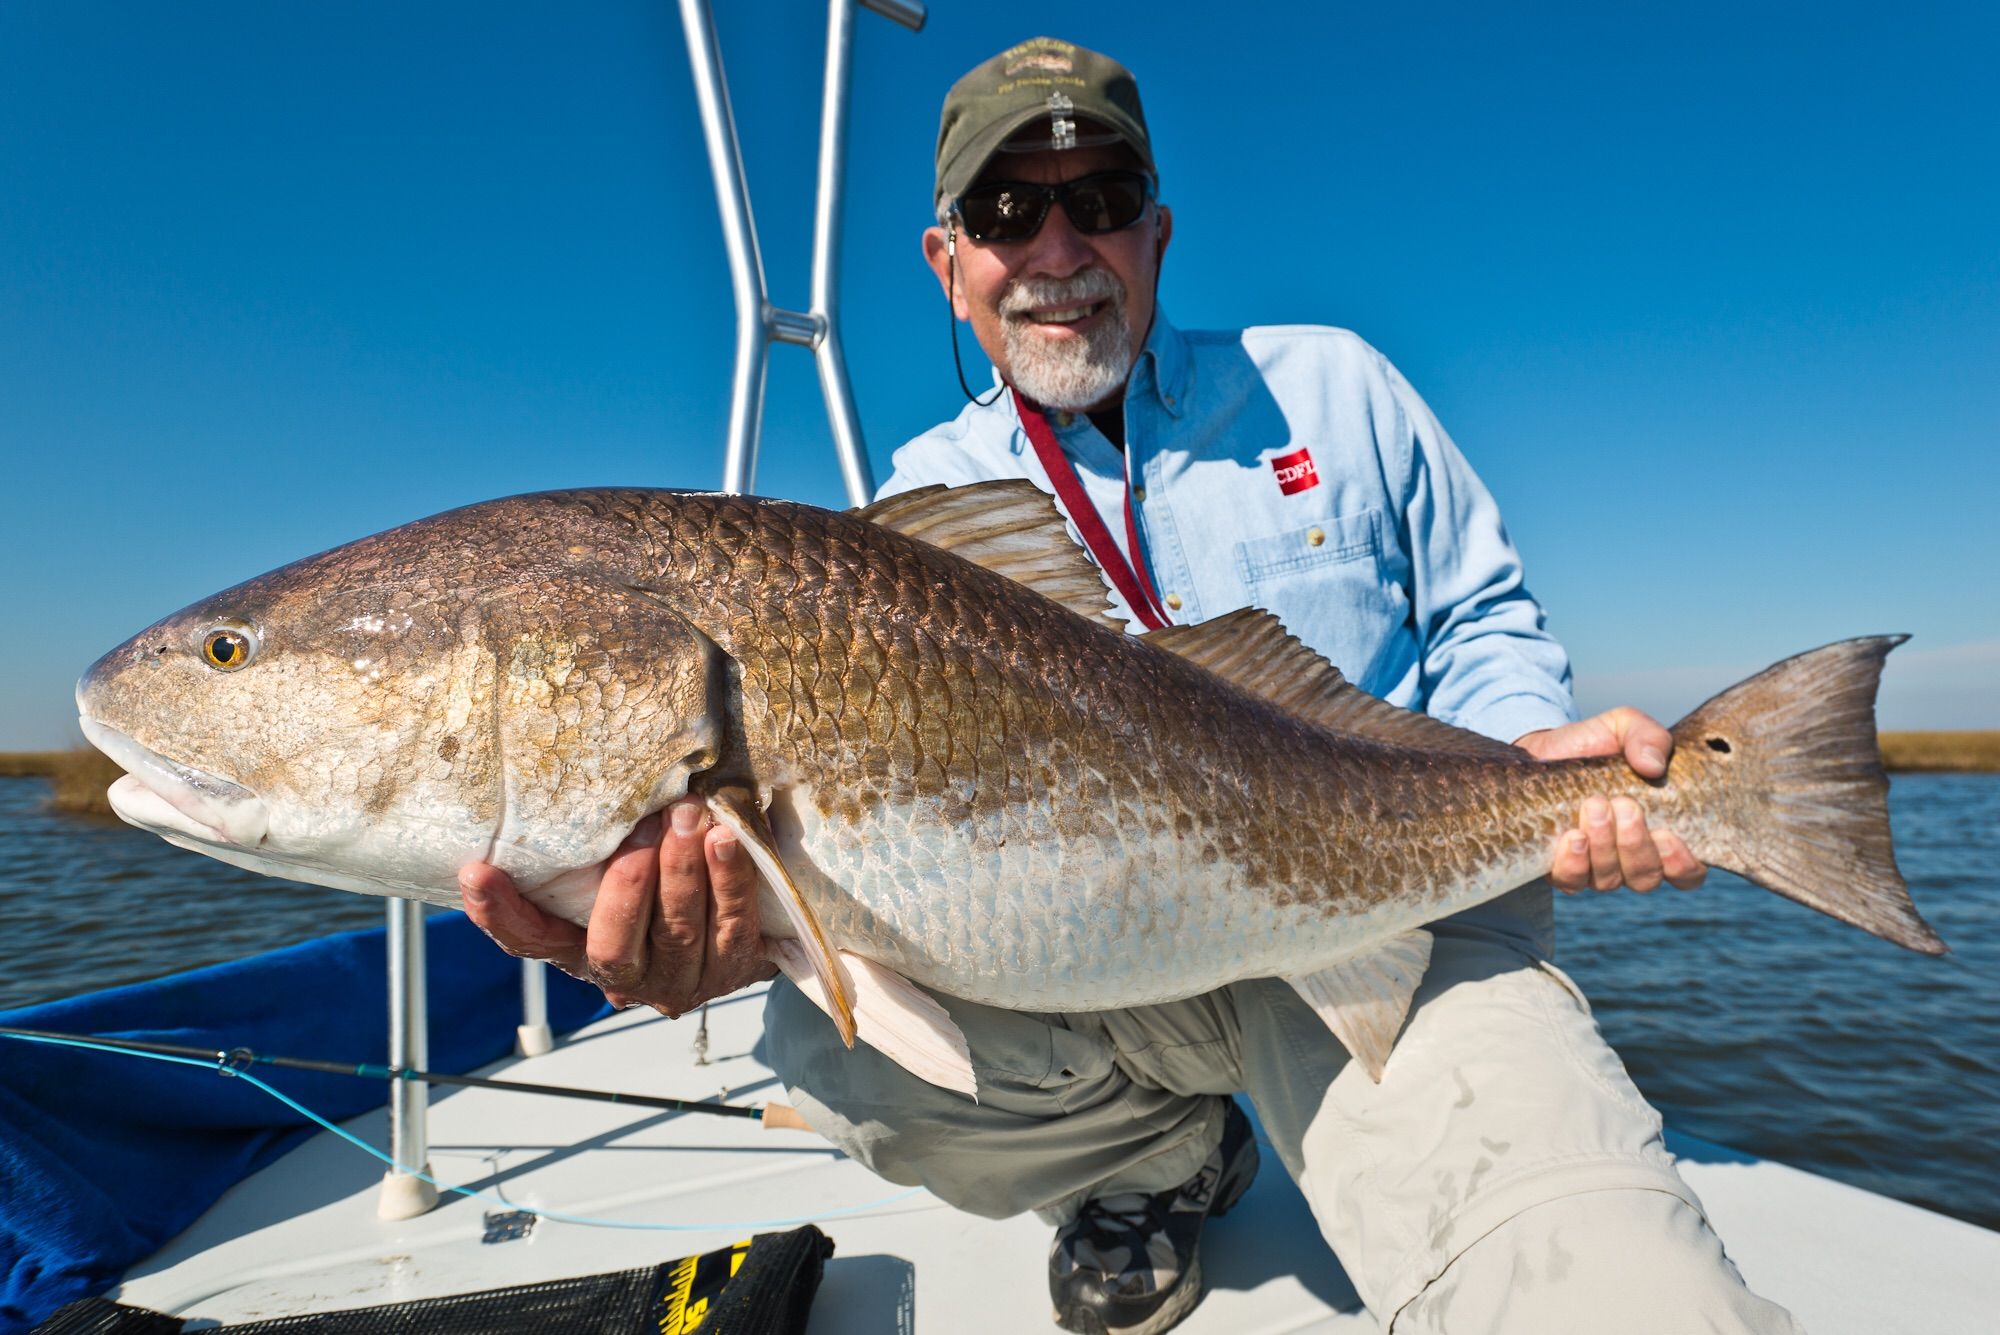 fly-fishing-redfish-new-orleans-louisiana-marsh-16